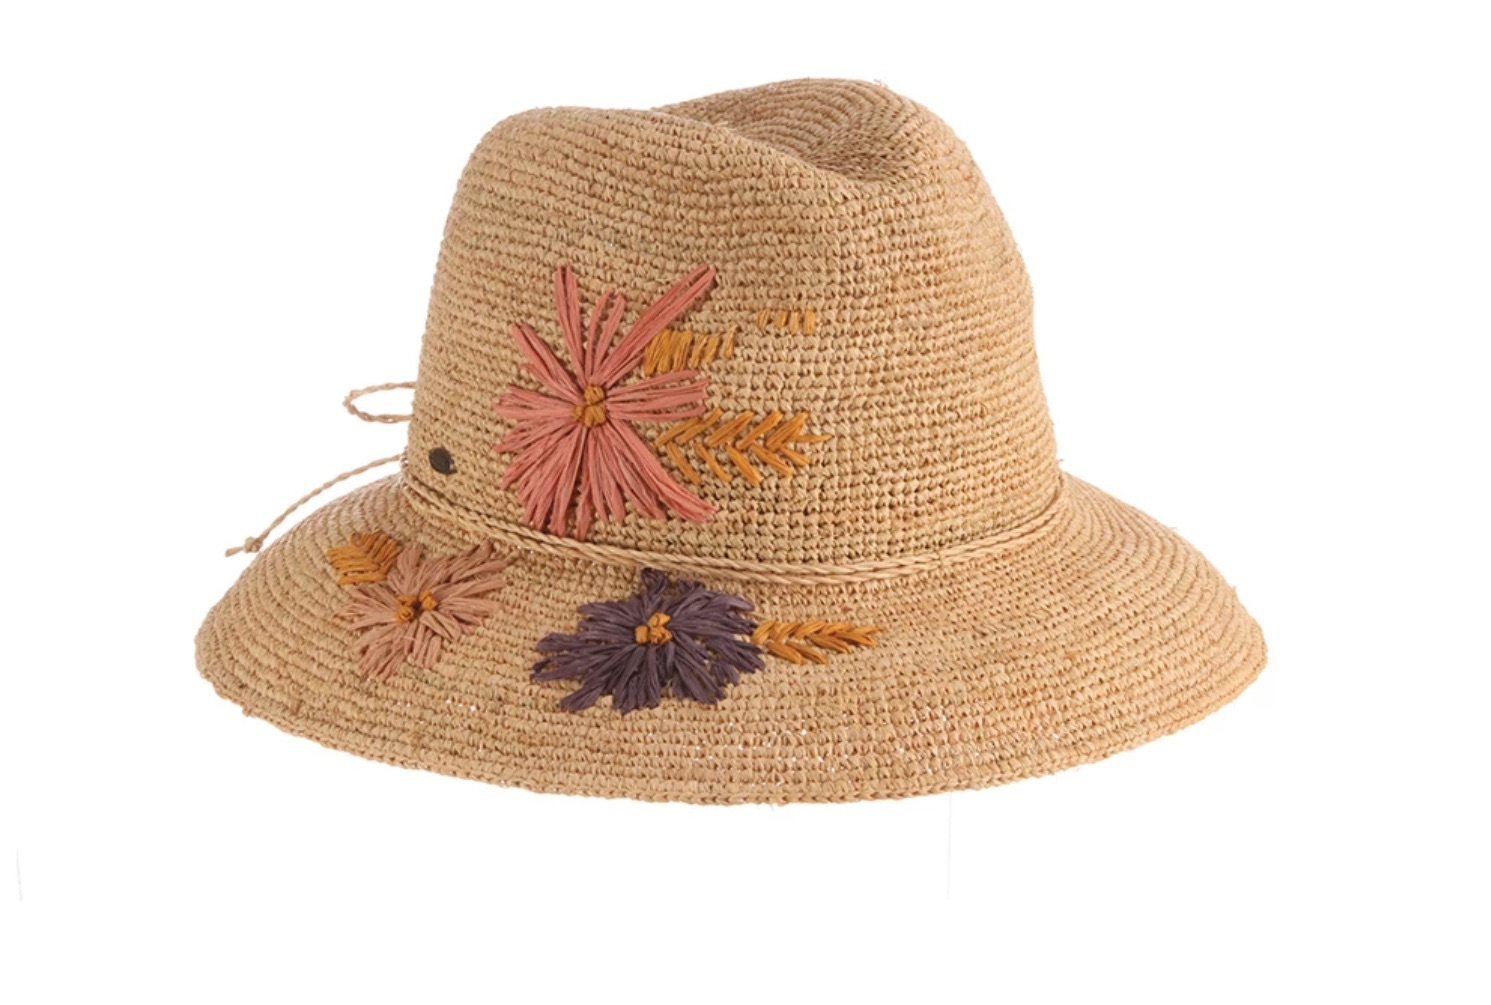 Tenth Street Hats Are Fabulous!